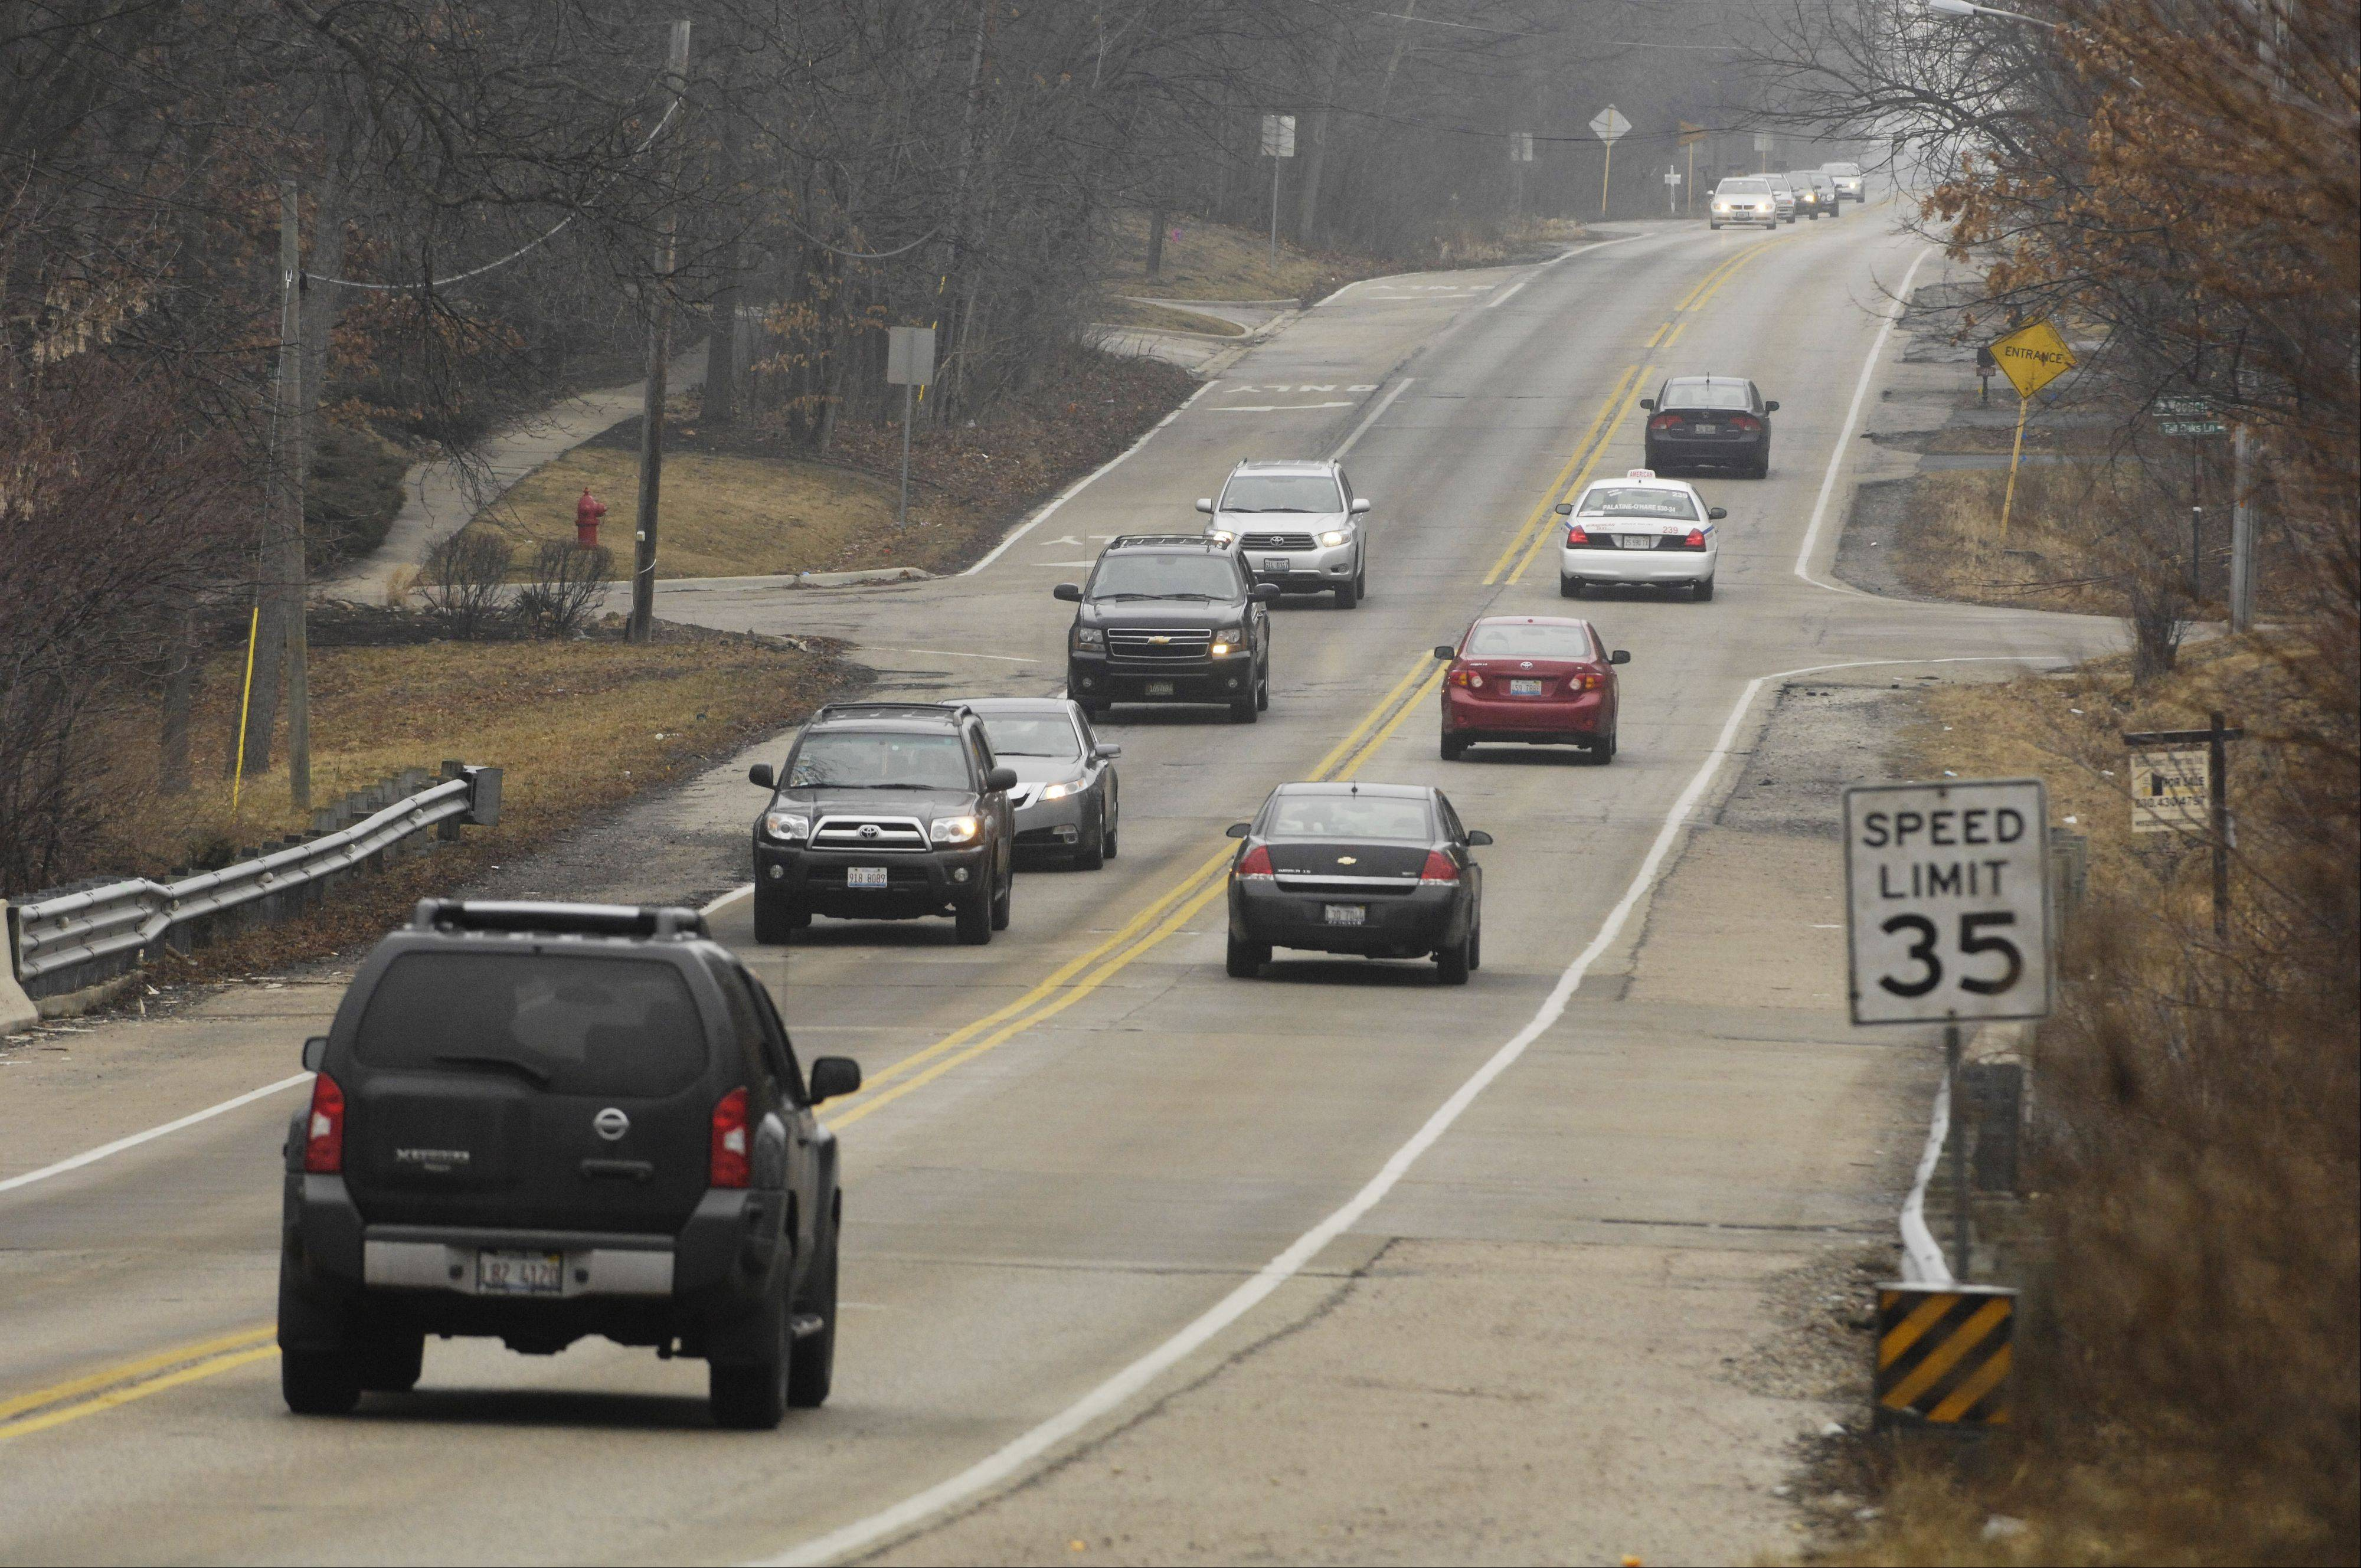 Rolling Meadows residents and city officials both seem to favor expanding Meacham Road from Emerson Avenue to Algonquin Road to three lanes, not five.